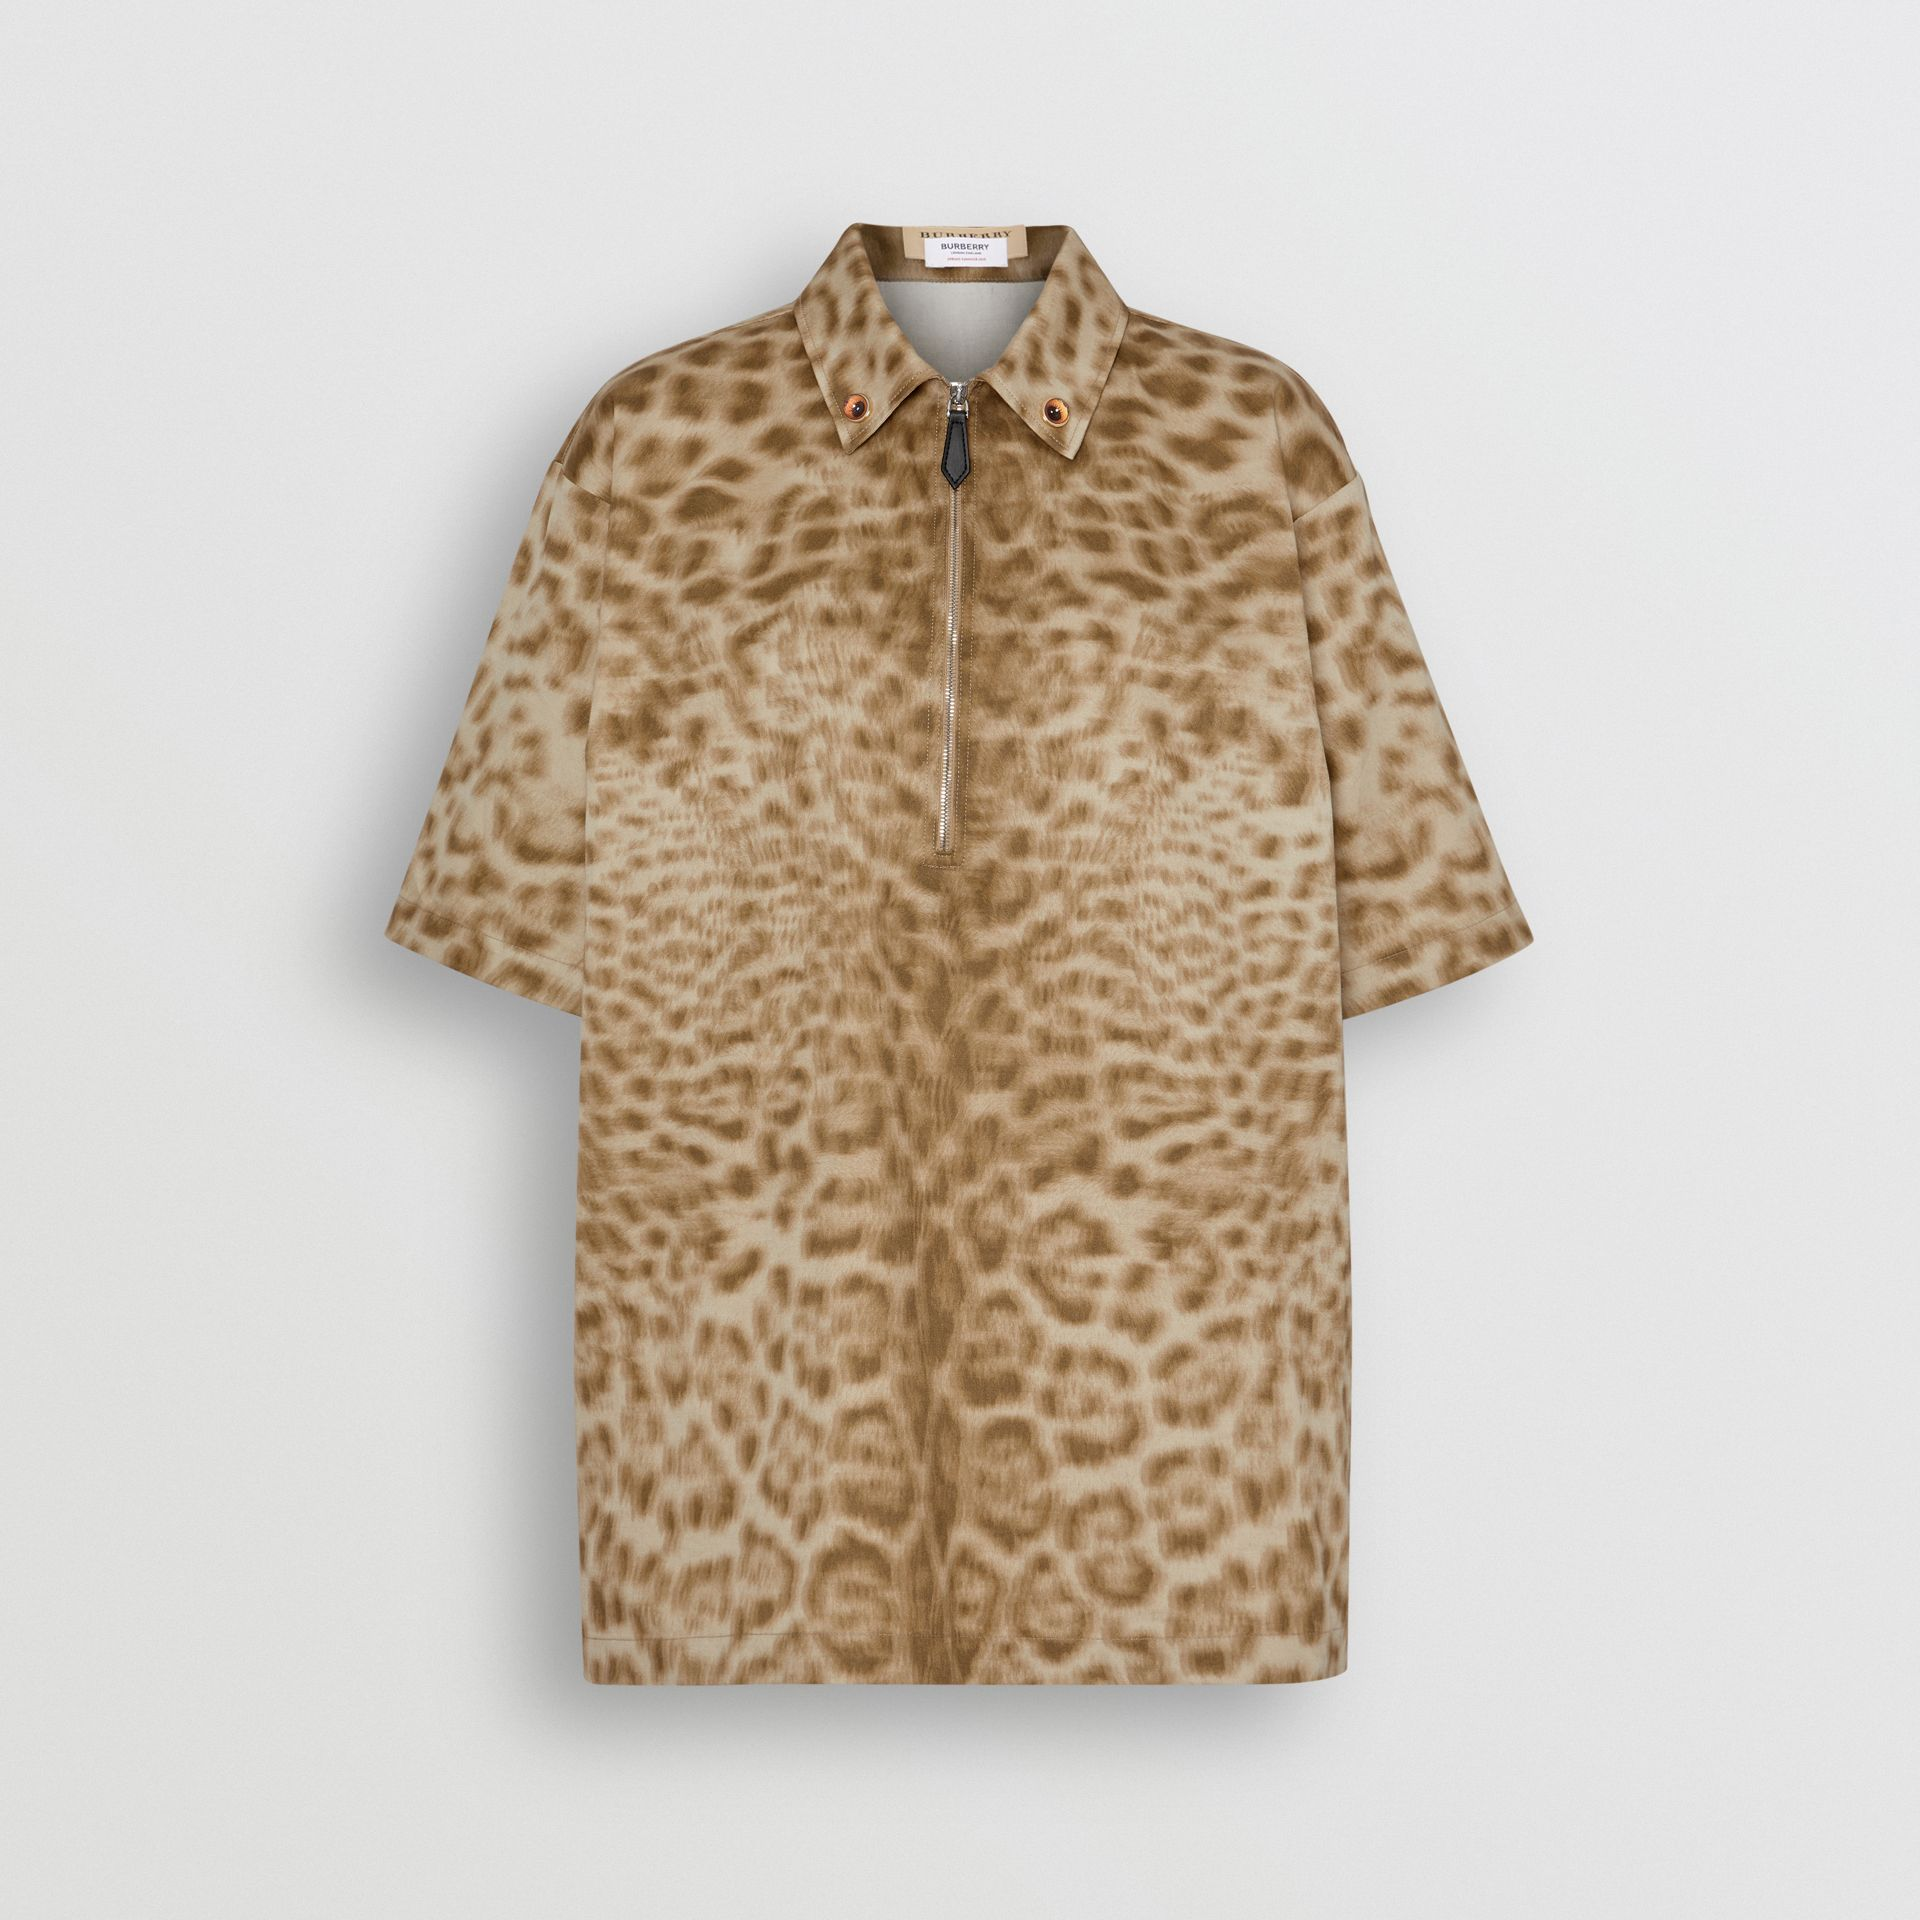 Short-sleeve Animal Print Cotton Shirt in Beige - Women | Burberry - gallery image 3